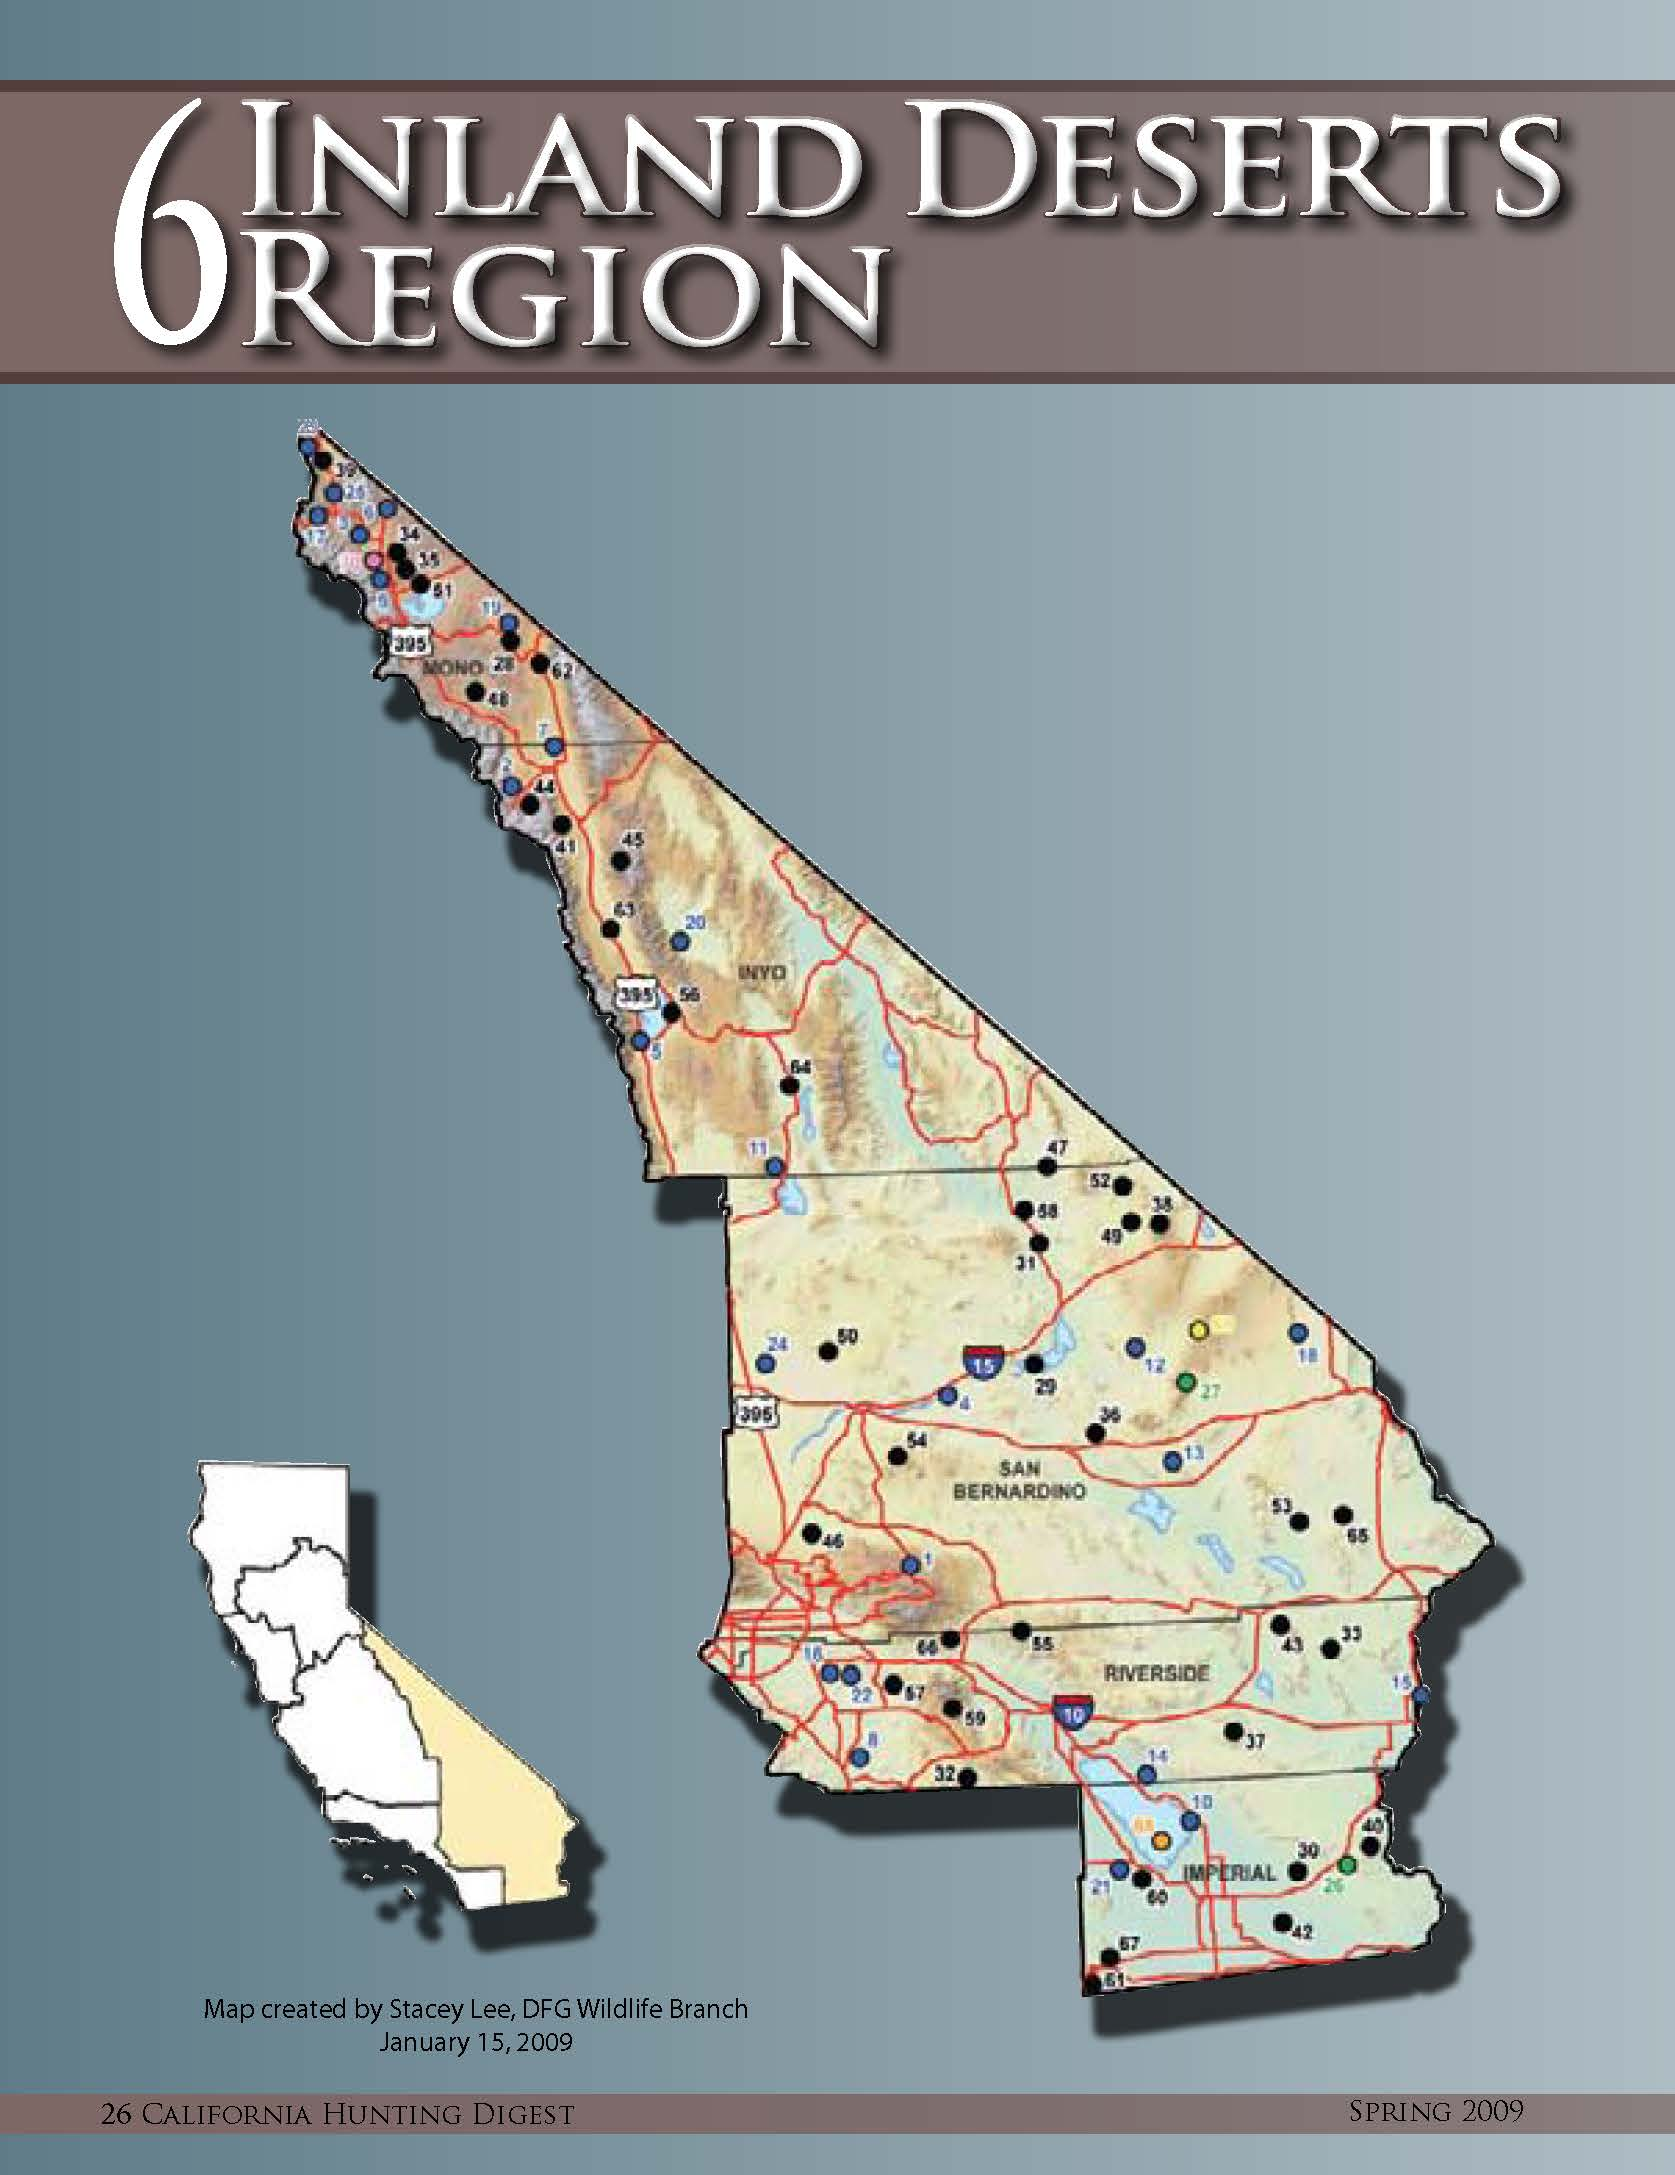 Bureau of Land Management Areas | We've moved to www